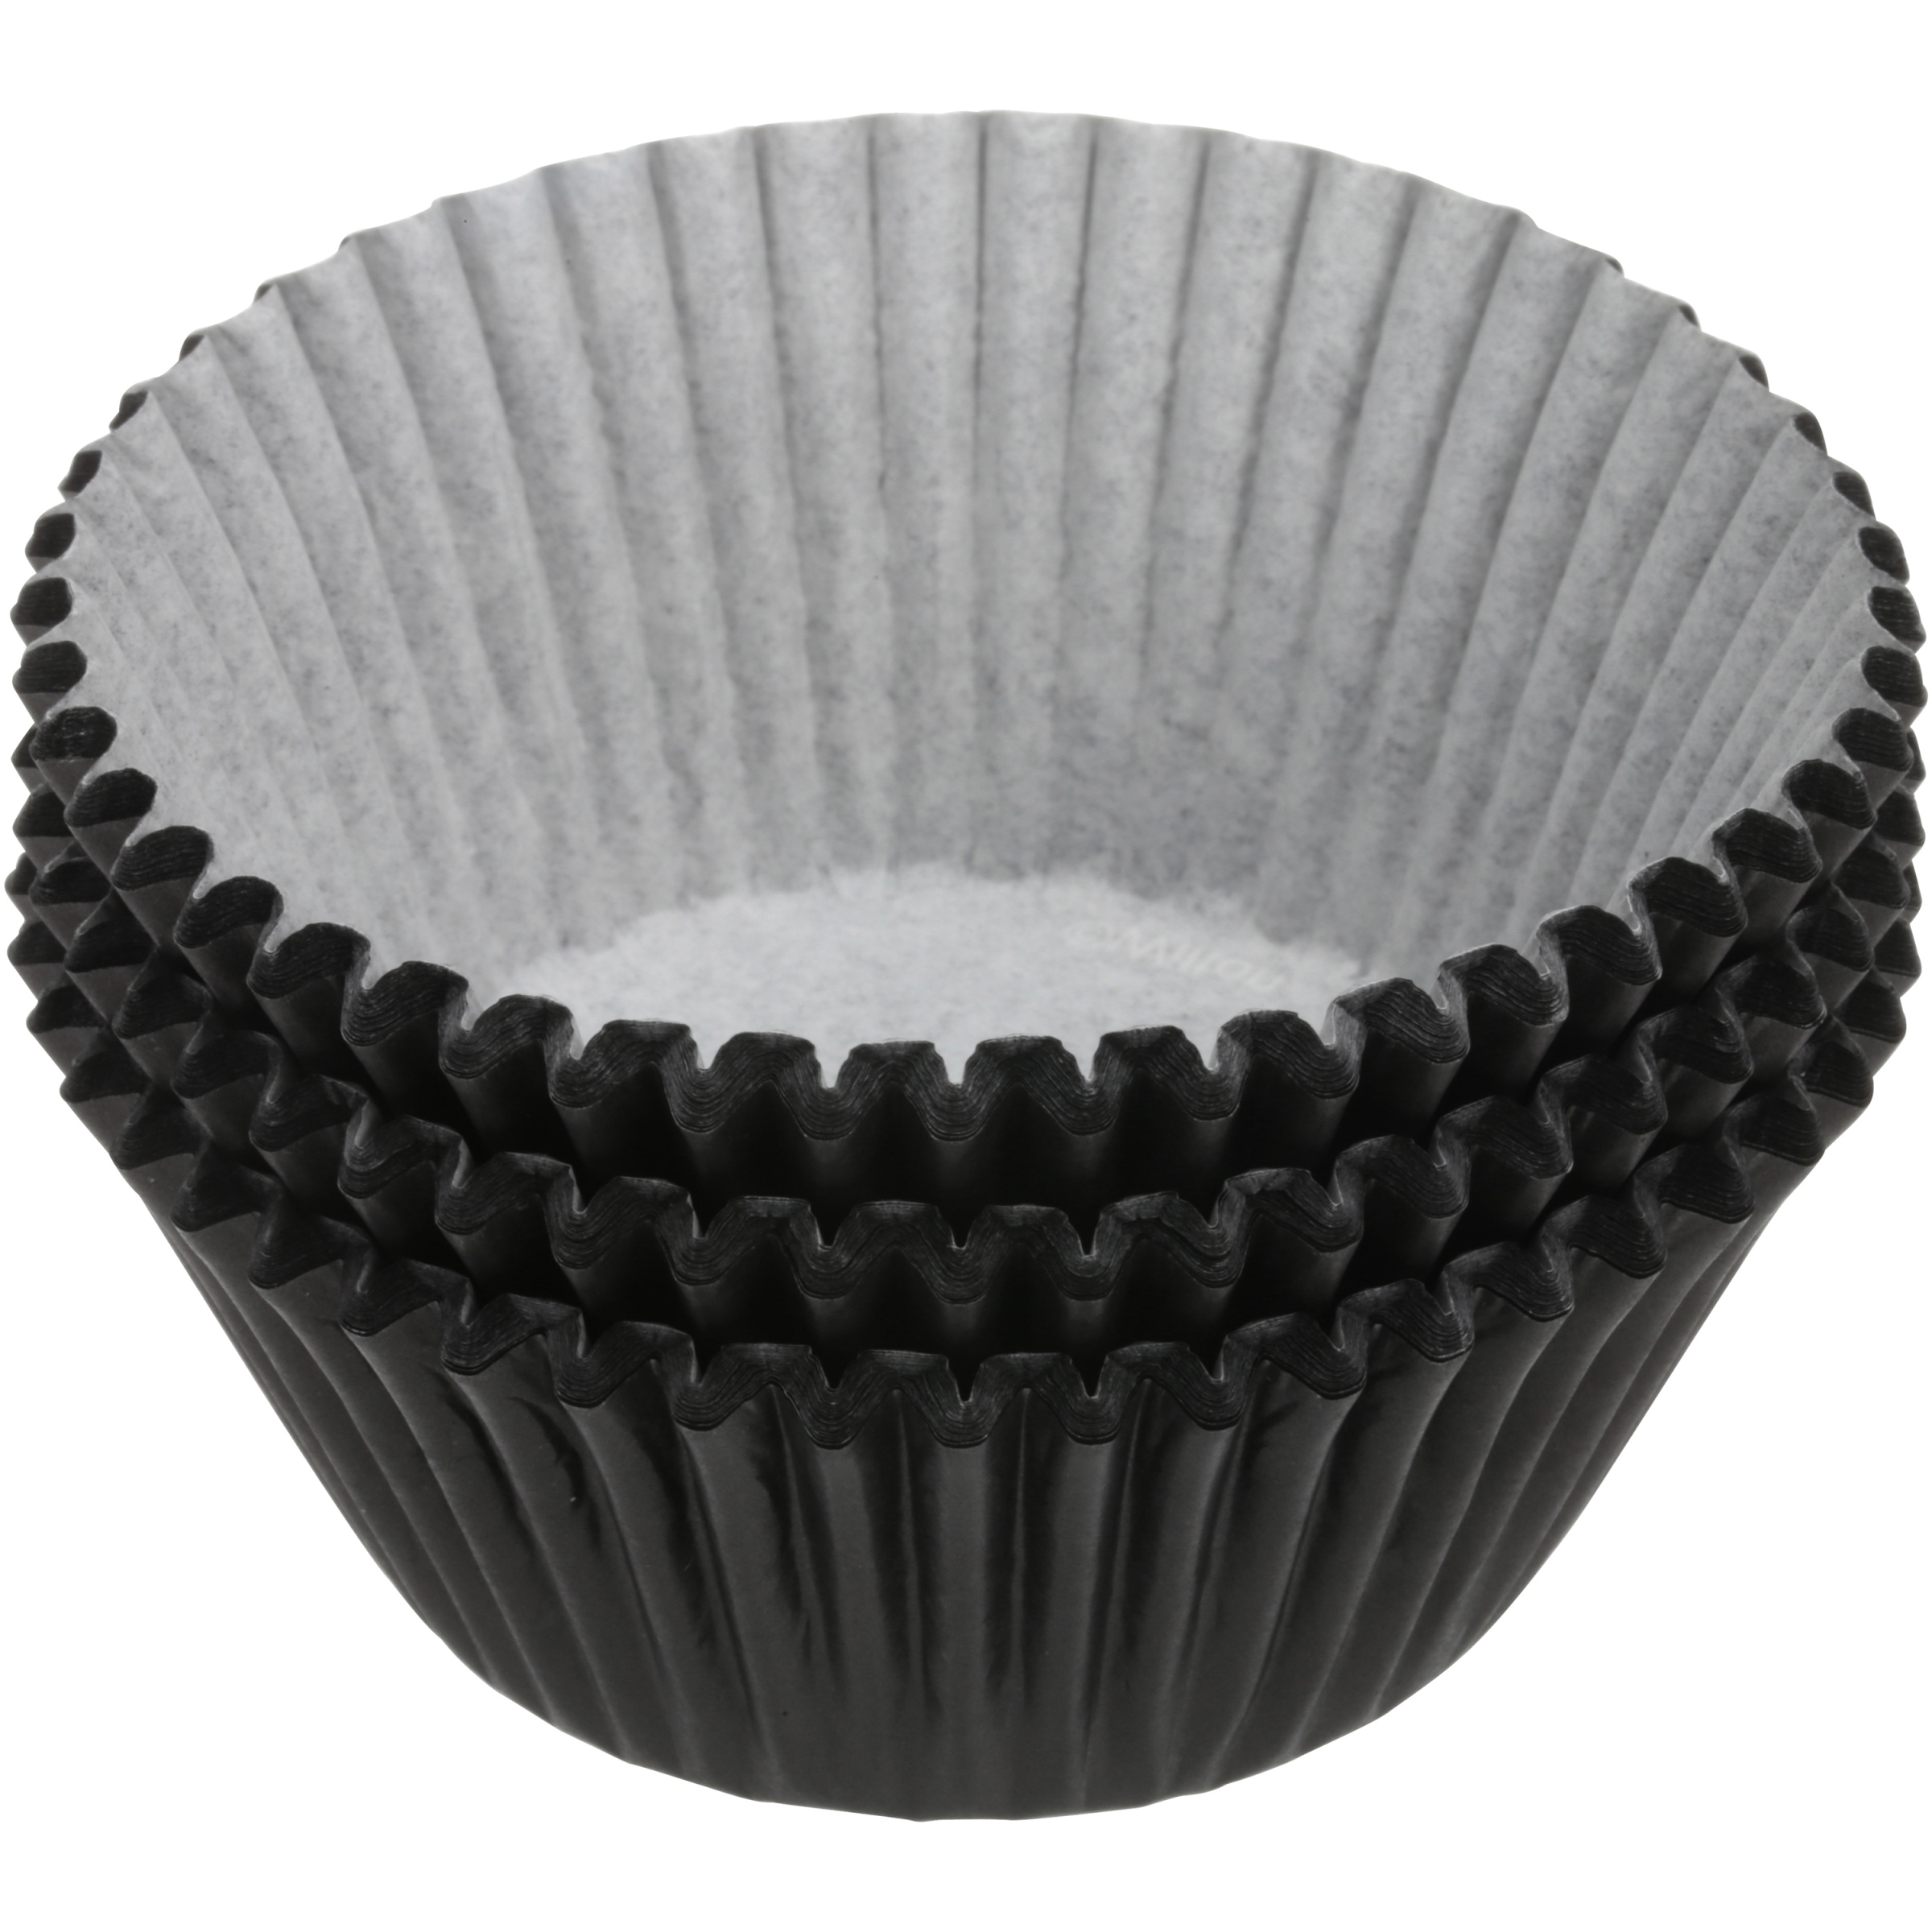 (4 Pack) Wilton® Black Standard Baking Cups 75 ct Pack